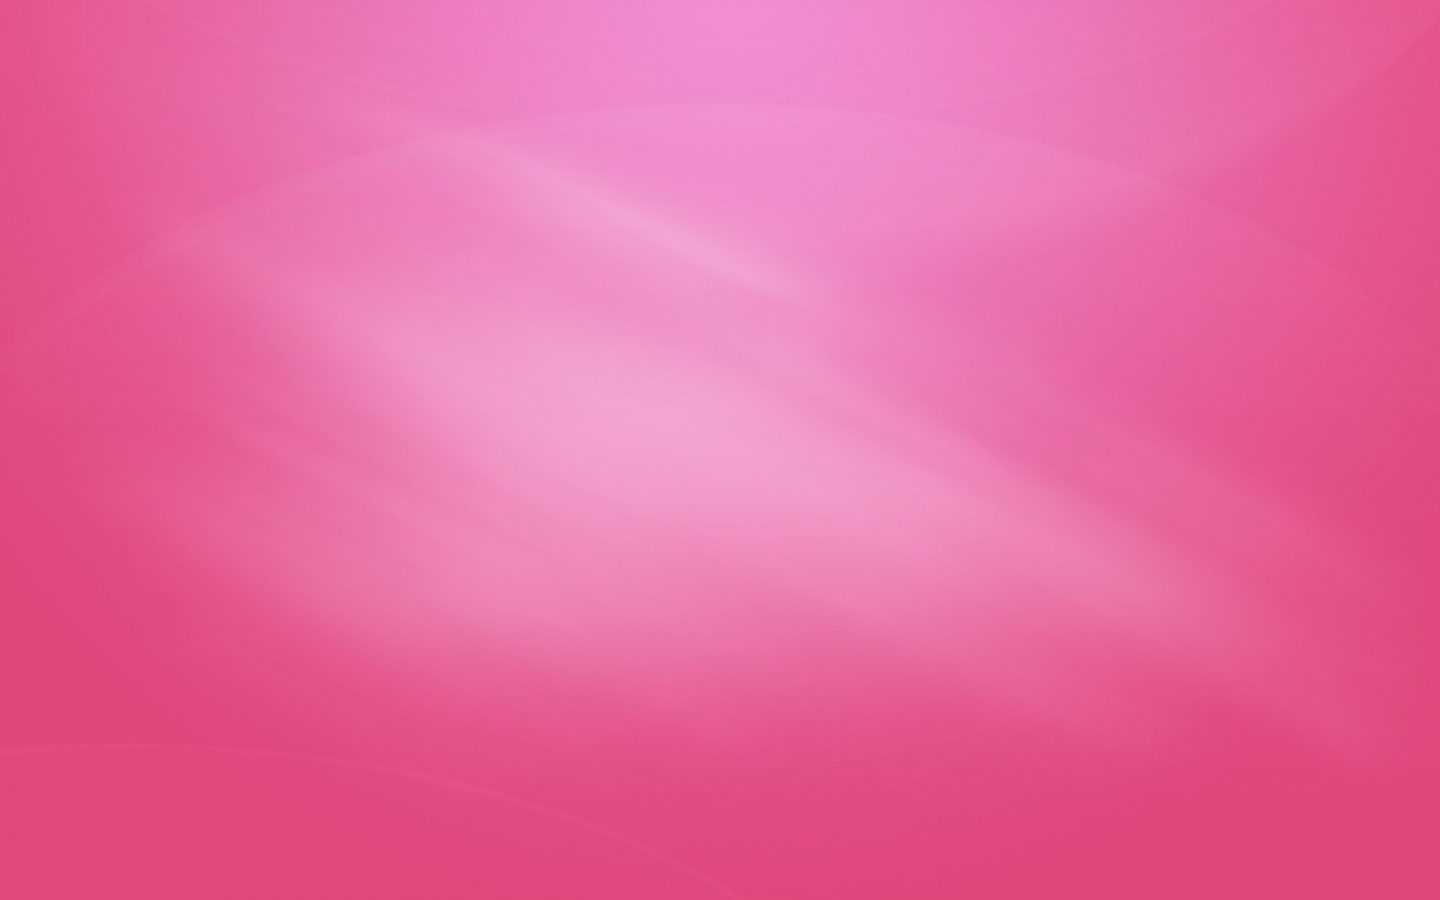 <b>Abstract Background Pink</b> Violet Stars And Lines Stock Vector ...